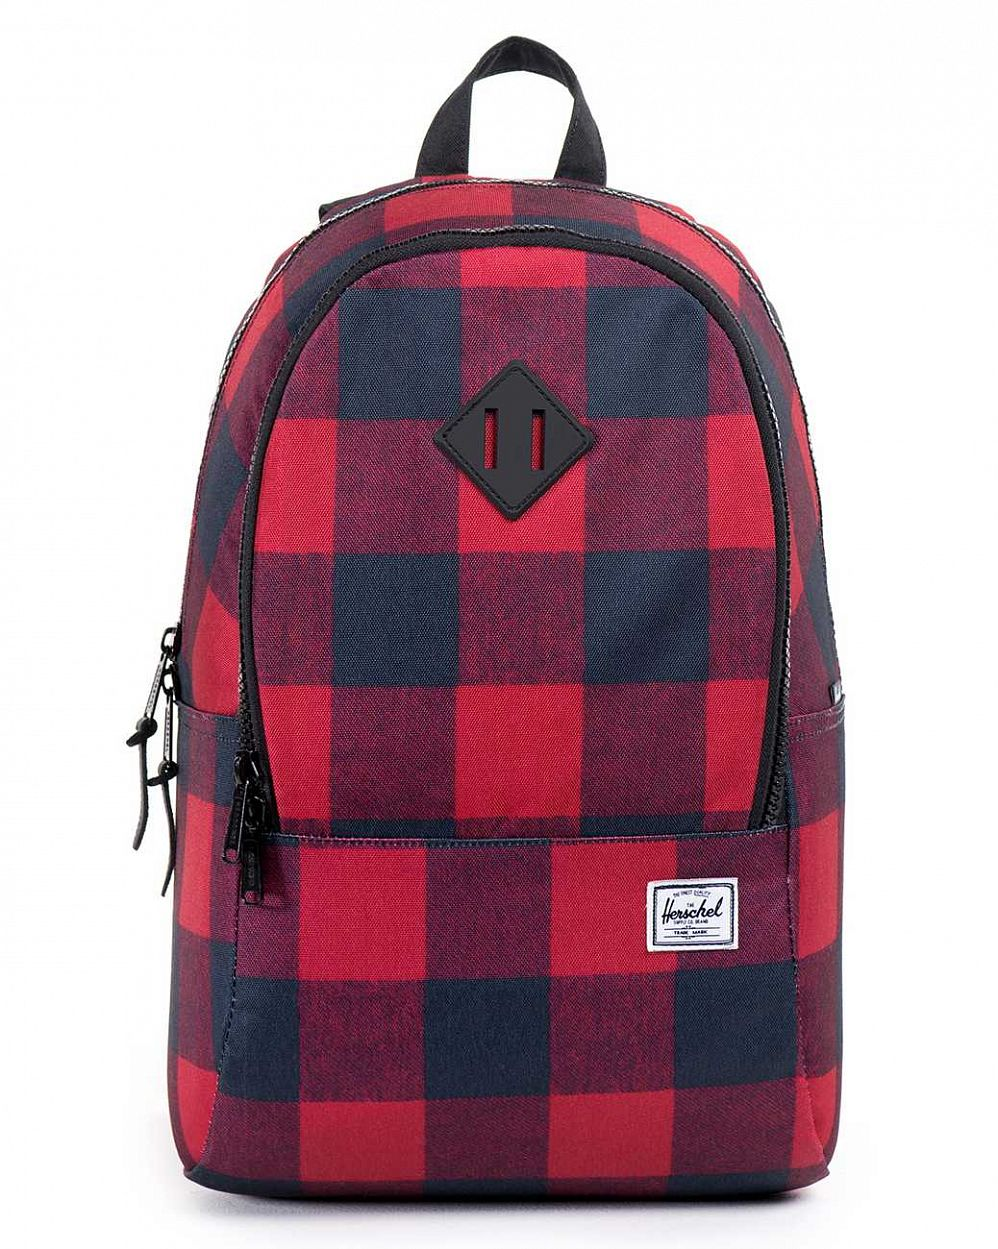 купить Рюкзак Herschel Nelson Buffalo Plaid Large Black Rubber в Москве